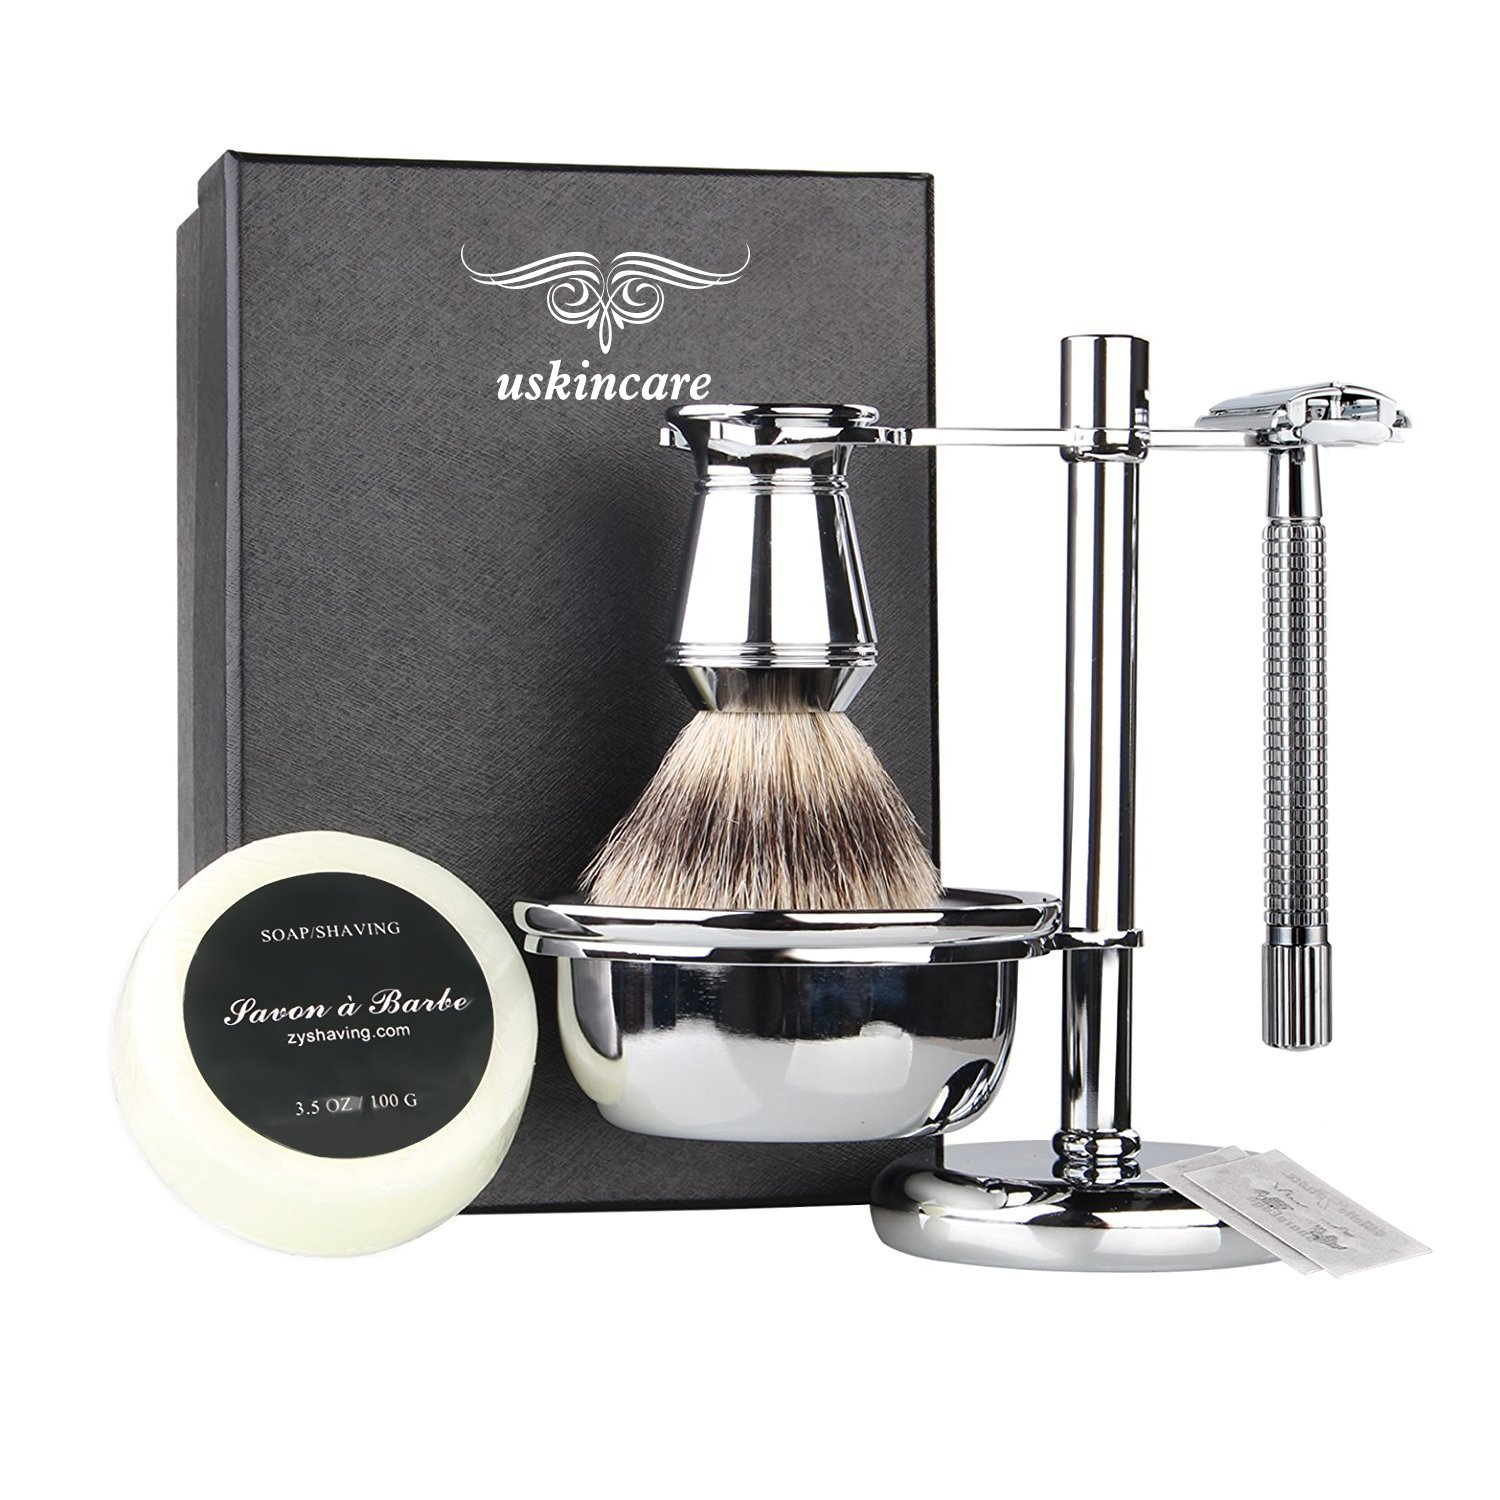 6 Piece Shaving Gift Kit - Includes Badger Hair Shaving Brush,Double Edge Safety Razor,Chrome Stand,Bowl,Shaving Soap,2 Replacement Blades